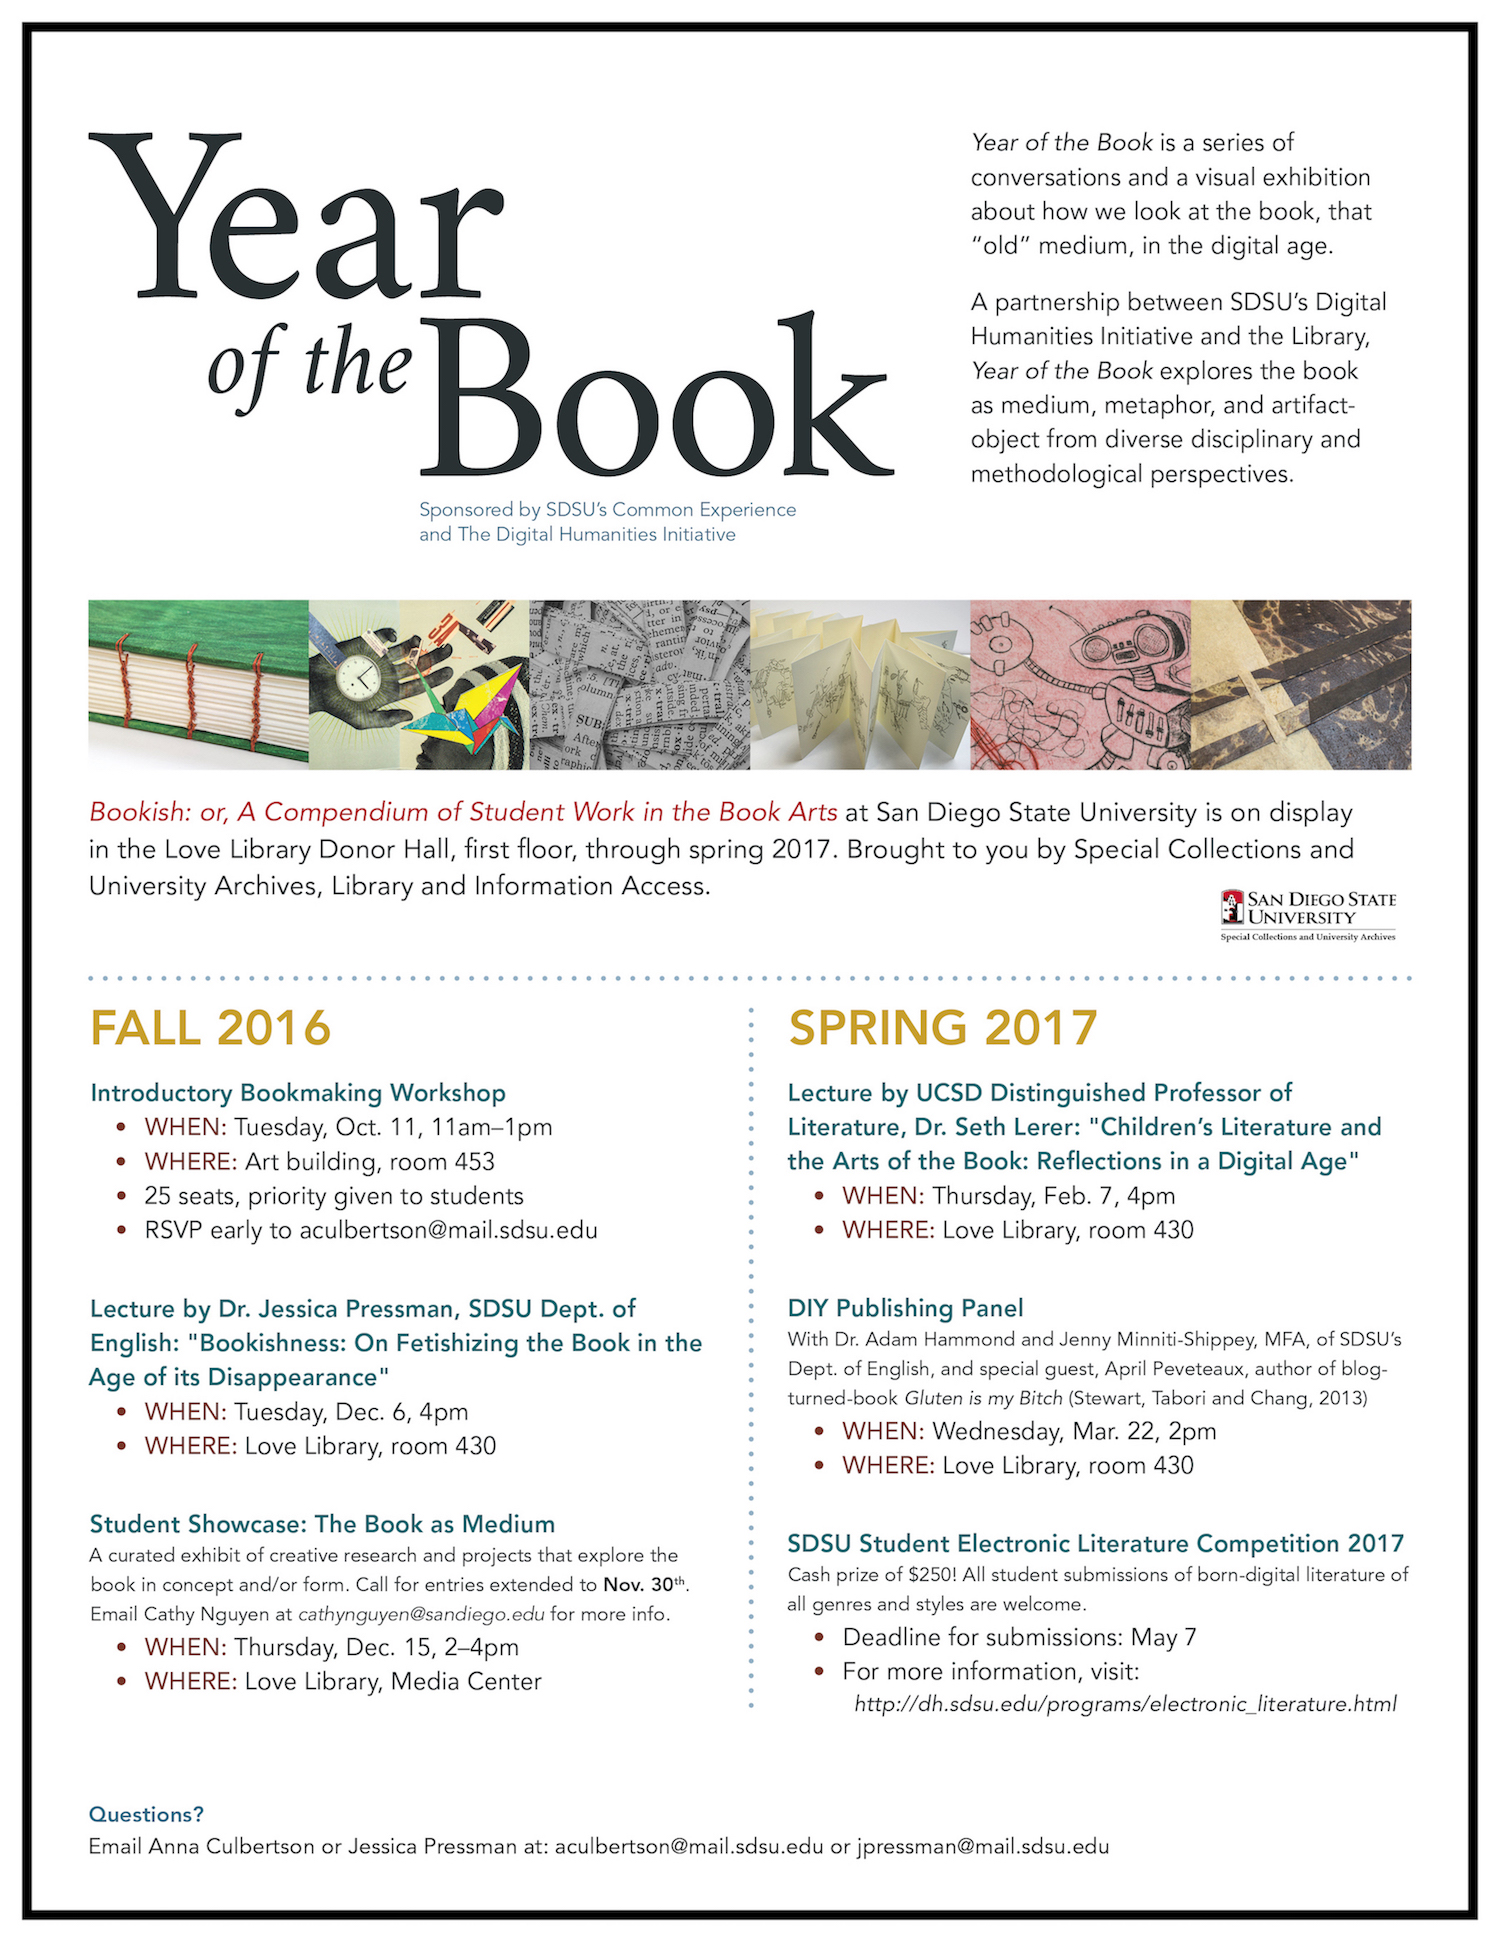 1098 t sdsu - Year Of The Book Flyer